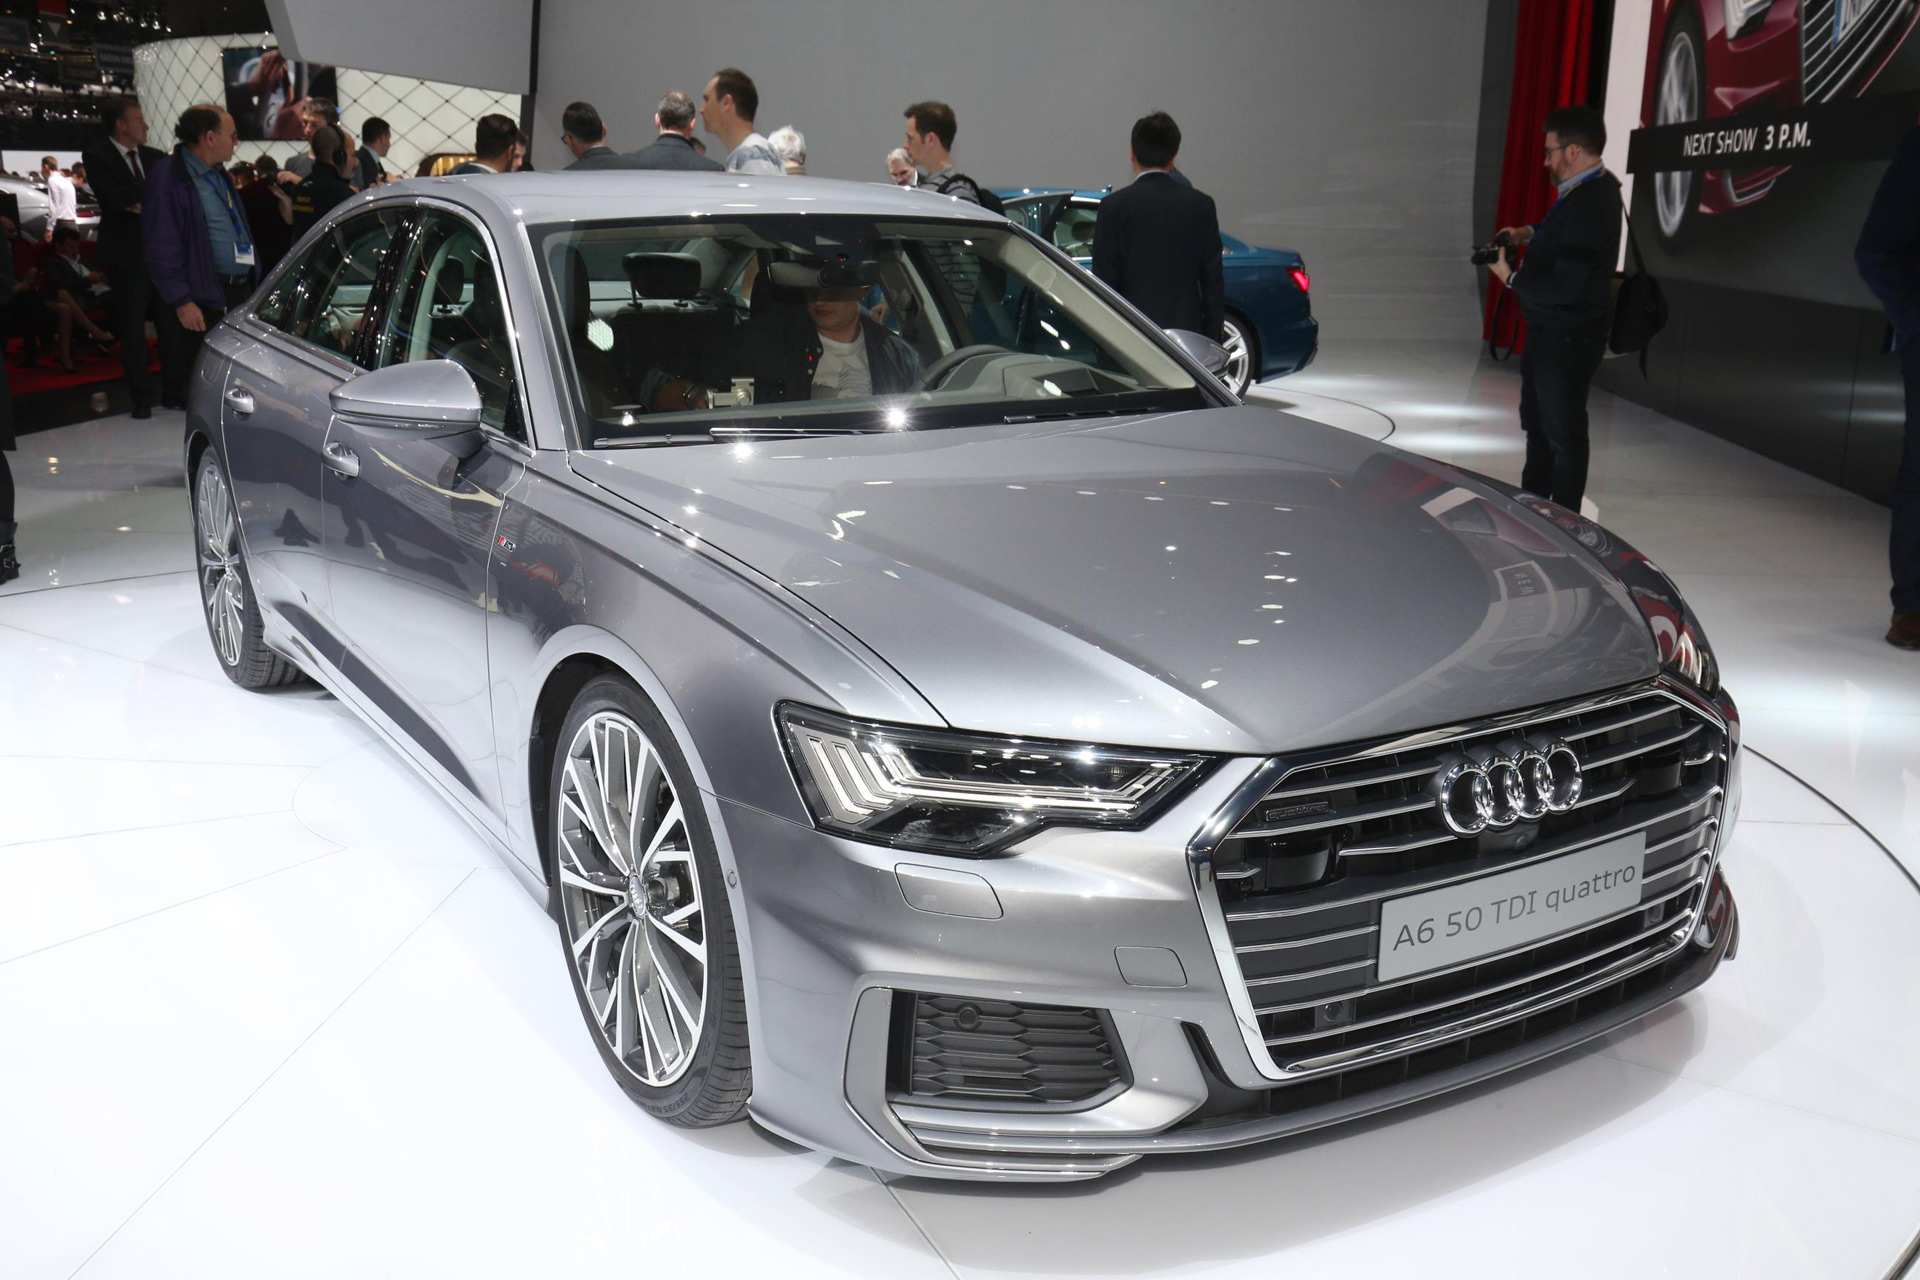 42 Great Best A6 Audi 2019 Interior Rumors Price and Review by Best A6 Audi 2019 Interior Rumors